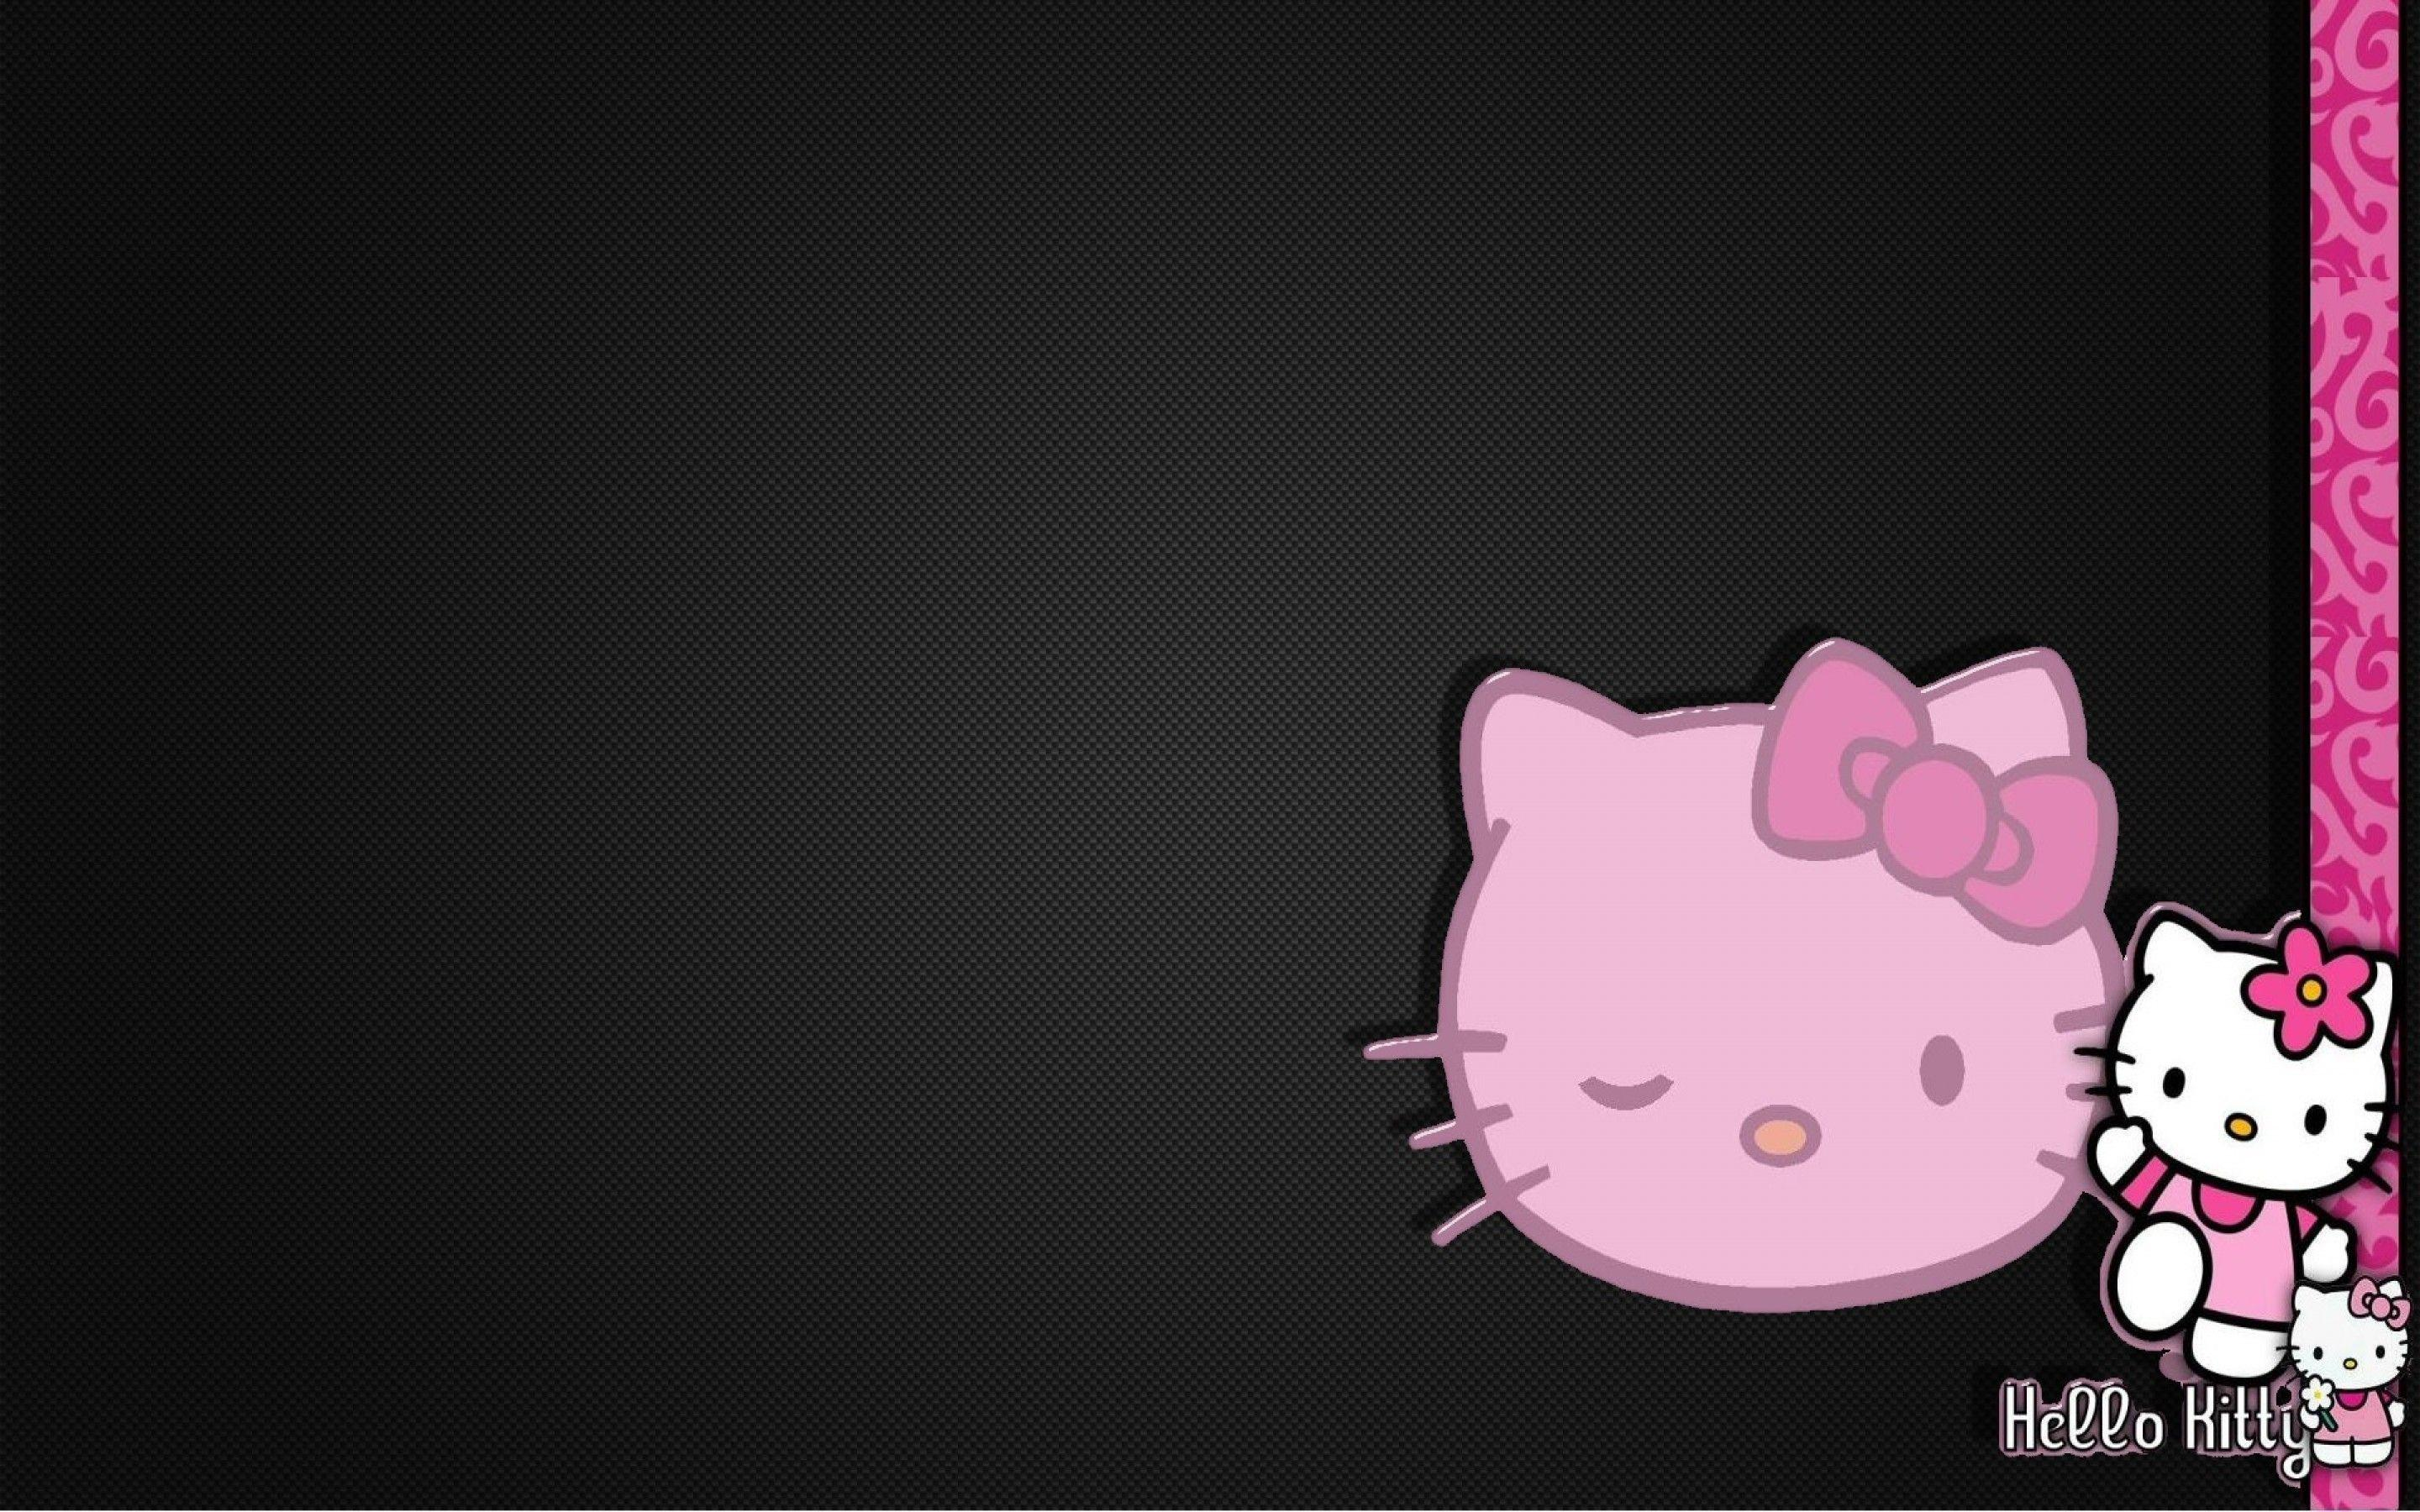 Hello Kitty Desktop Backgrounds Wallpapers - Wallpaper Cave - photo#12